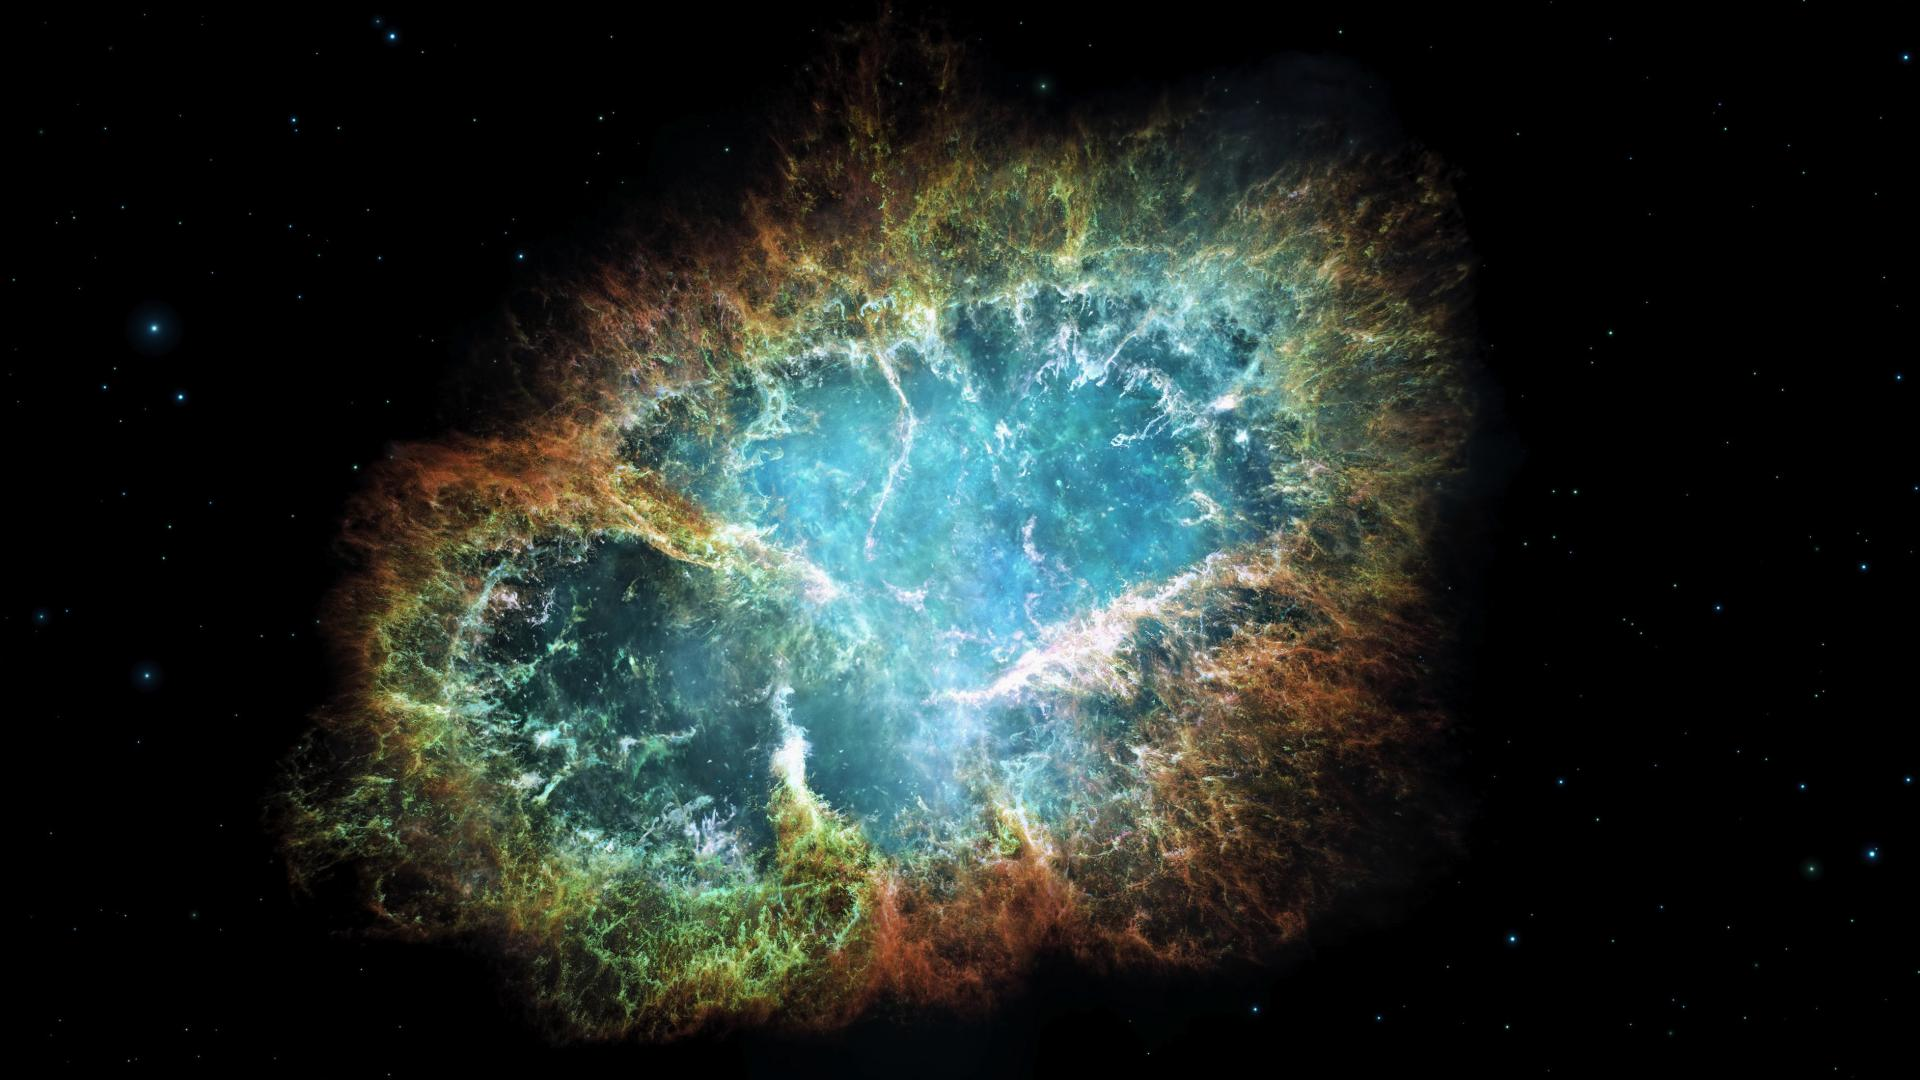 Crab Nebula for Cool Galaxy Backgrounds HD Wallpapers 1920x1080